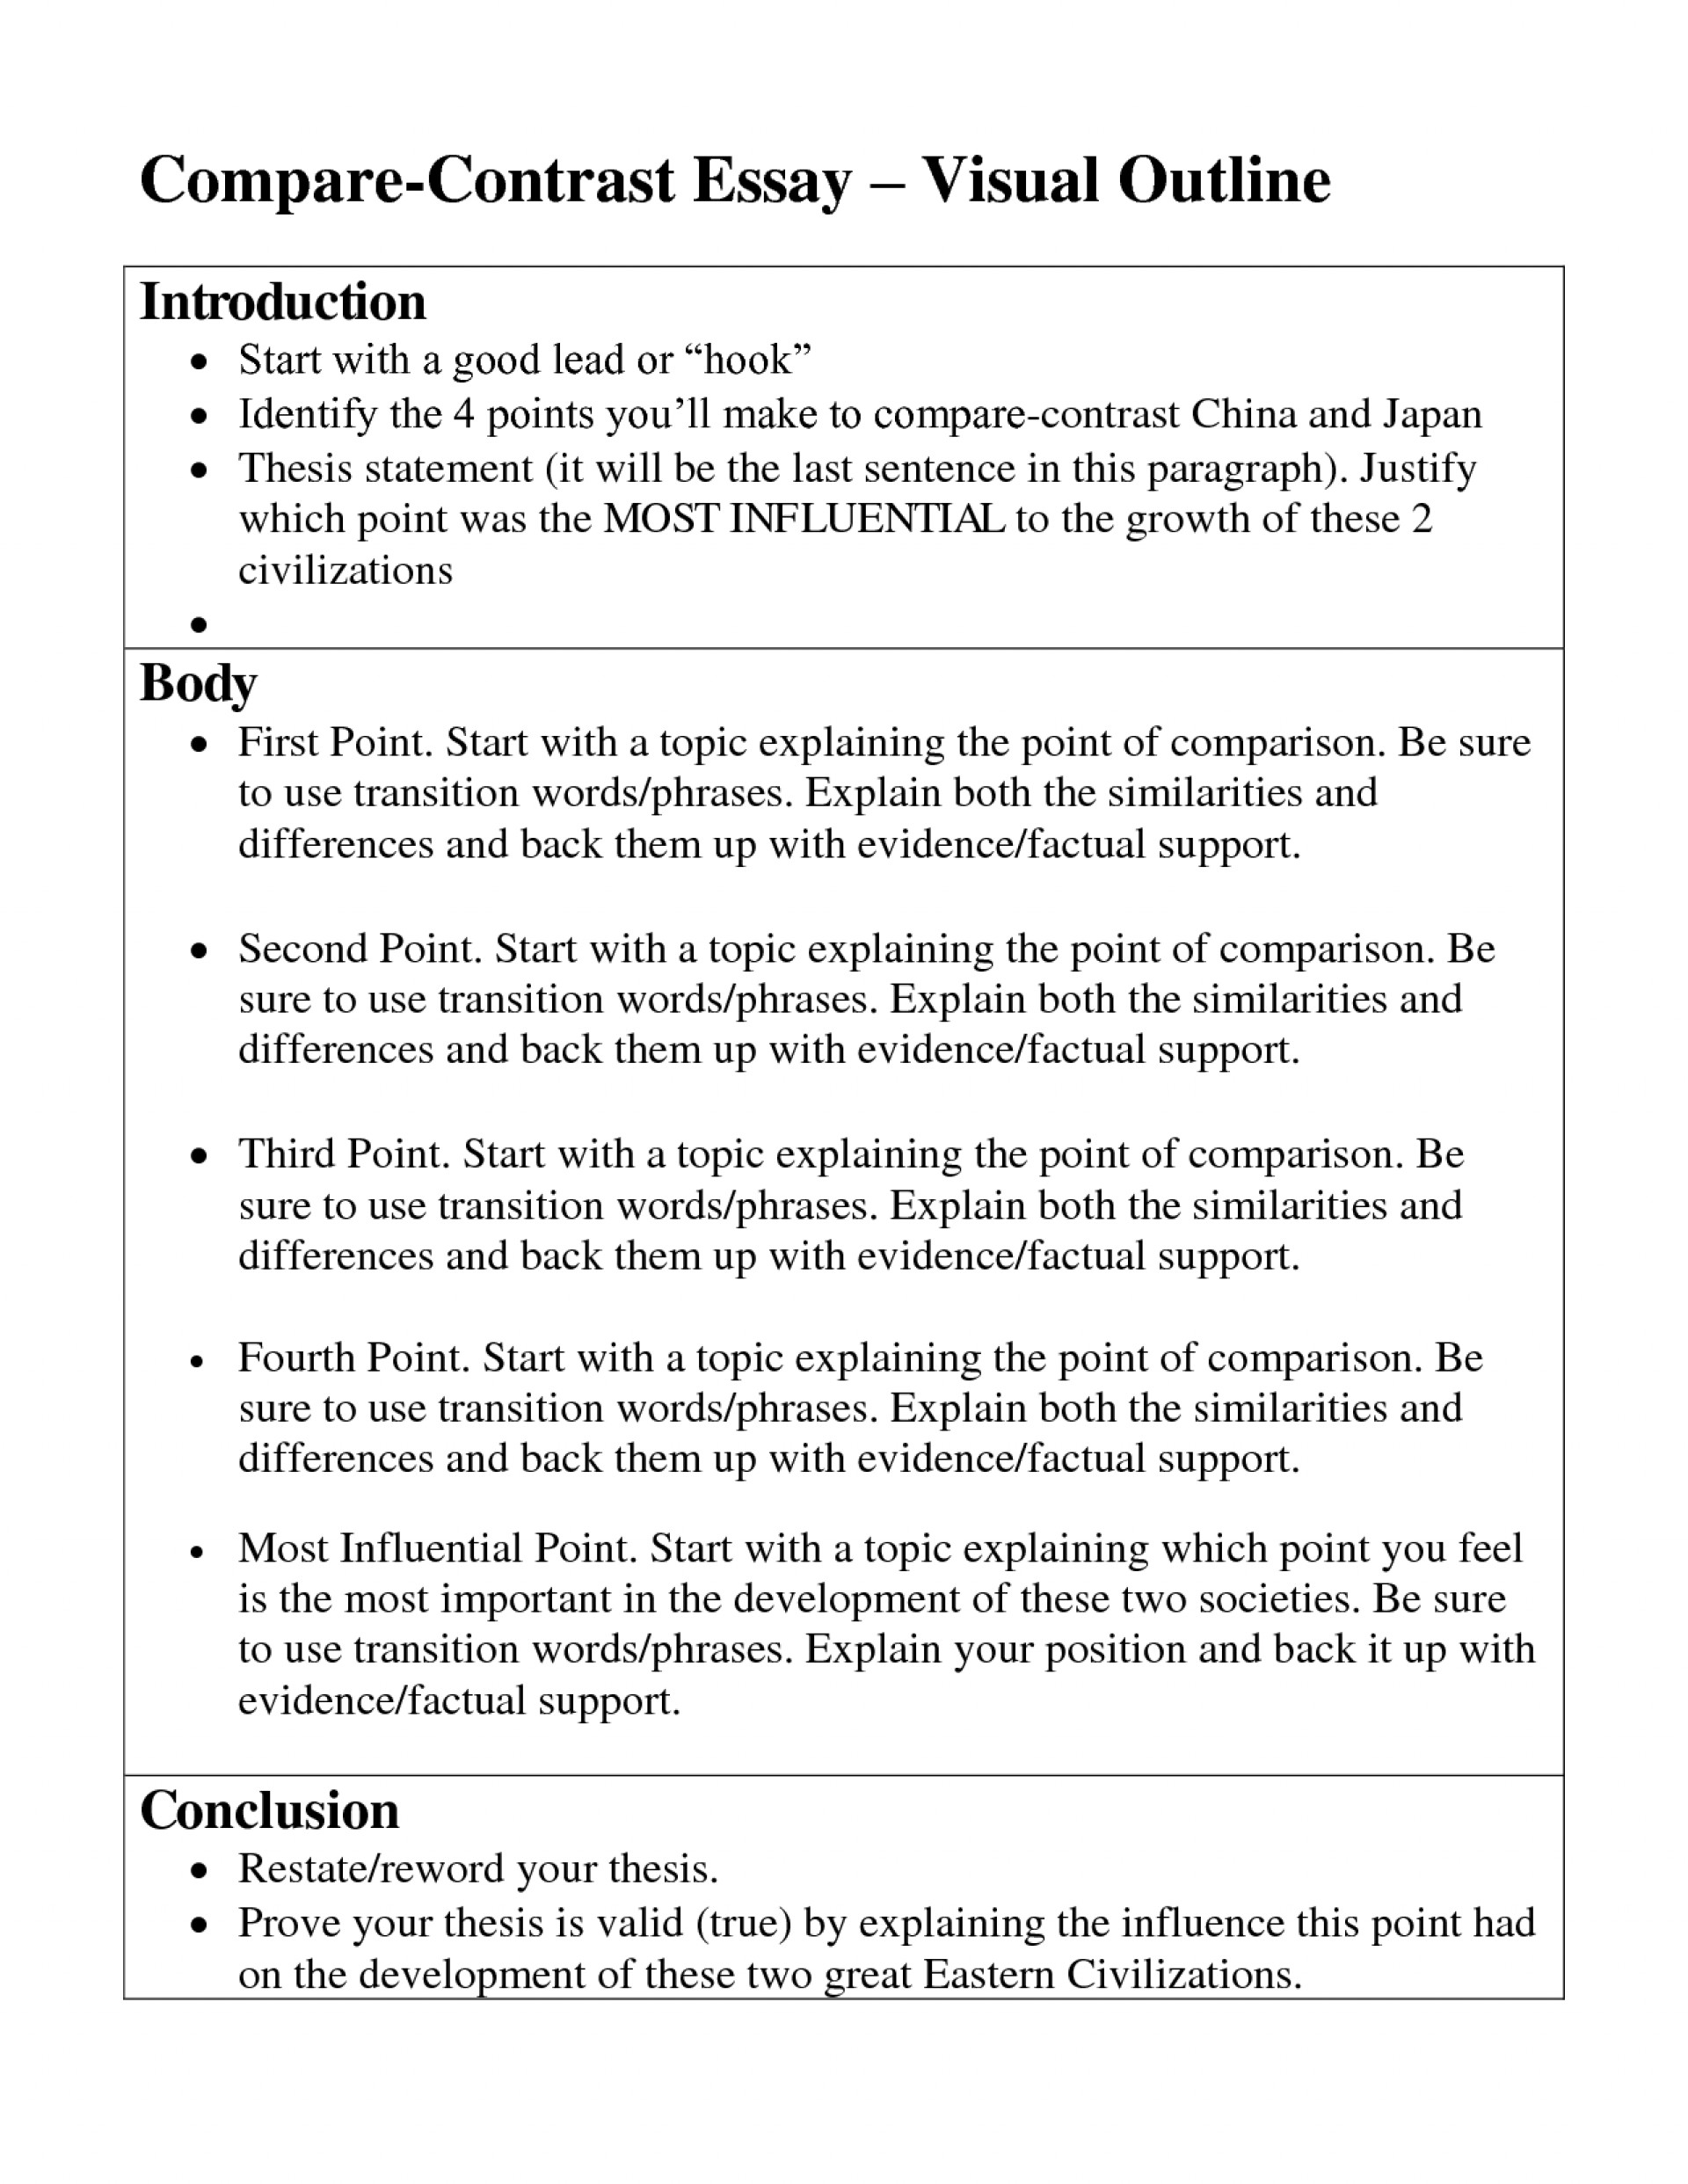 005 How To Write Compare And Contrast Essay Outstanding A Outline Comparison Ppt Middle School 1920